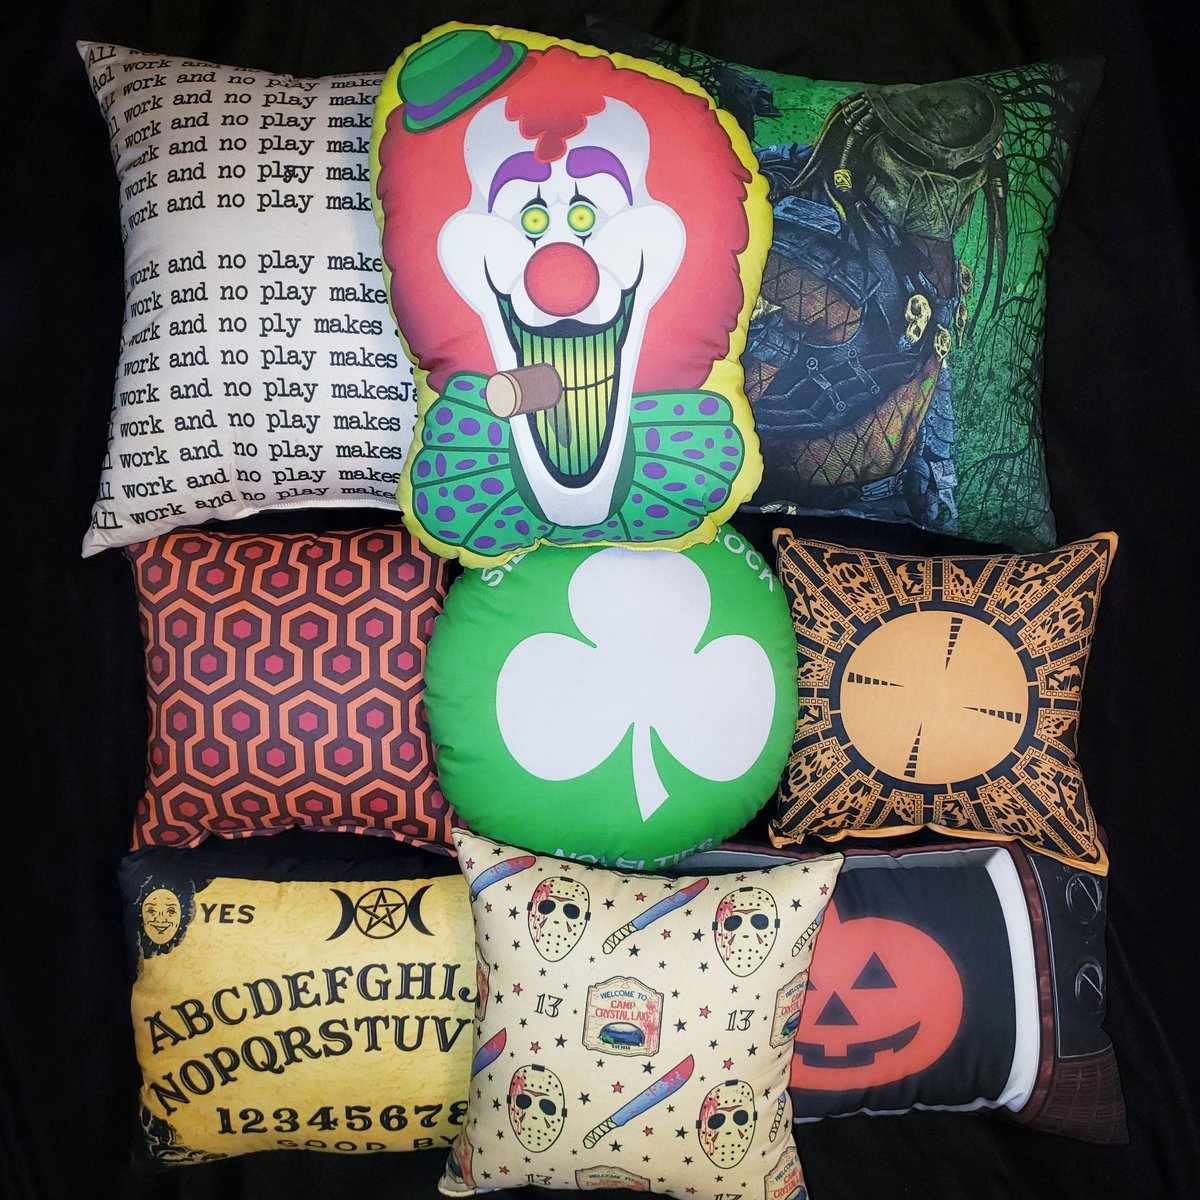 We make all of our pillows in our studio in Rhode Island. These are just some of the designs we offer.  https://horrordecor.com/collections/pillows …  #horrordecor #horrordecorofficial #handmade #horrorcollector #horrorpillowspic.twitter.com/ePnAoqUPXn